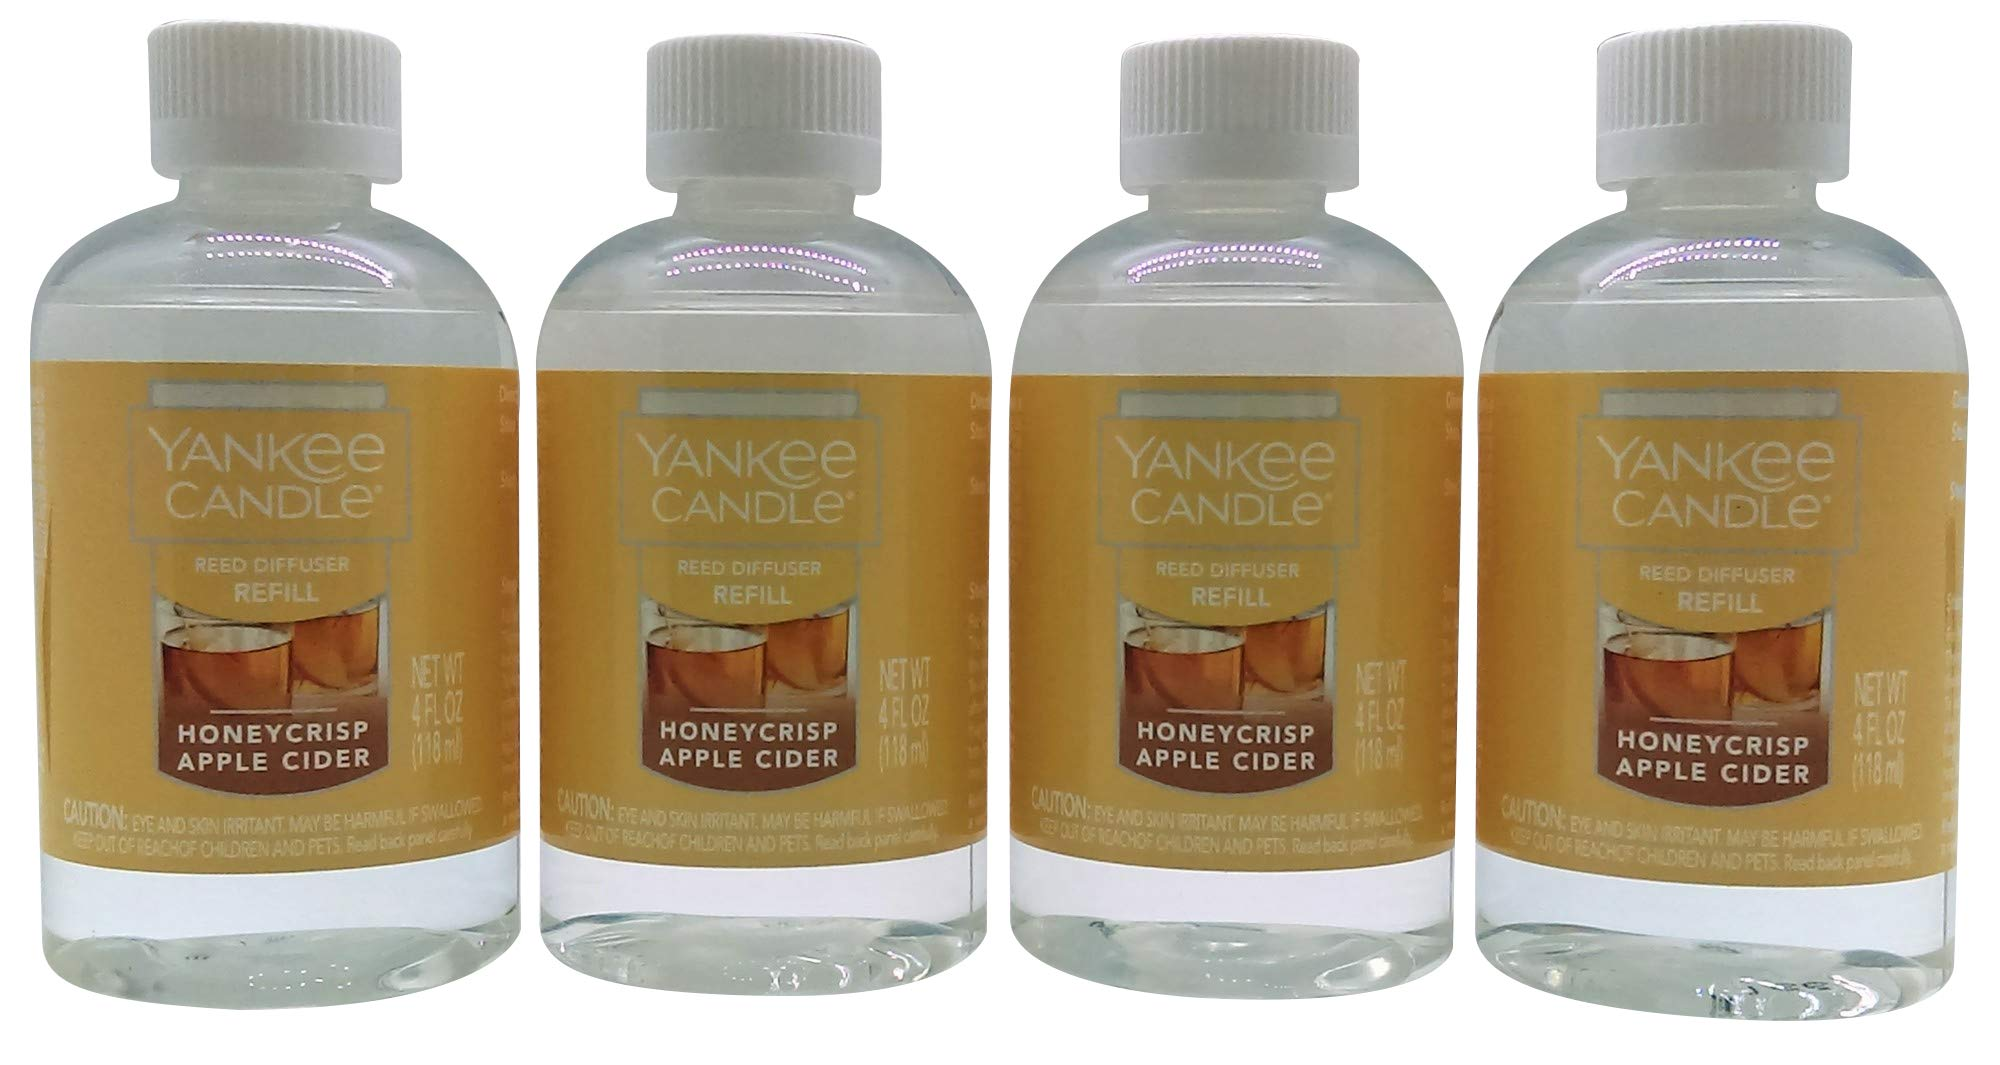 Yankee Candle Honeycrisp Apple Cider Reed Diffuser Refill Oil 4-Pack by Yankee Candle